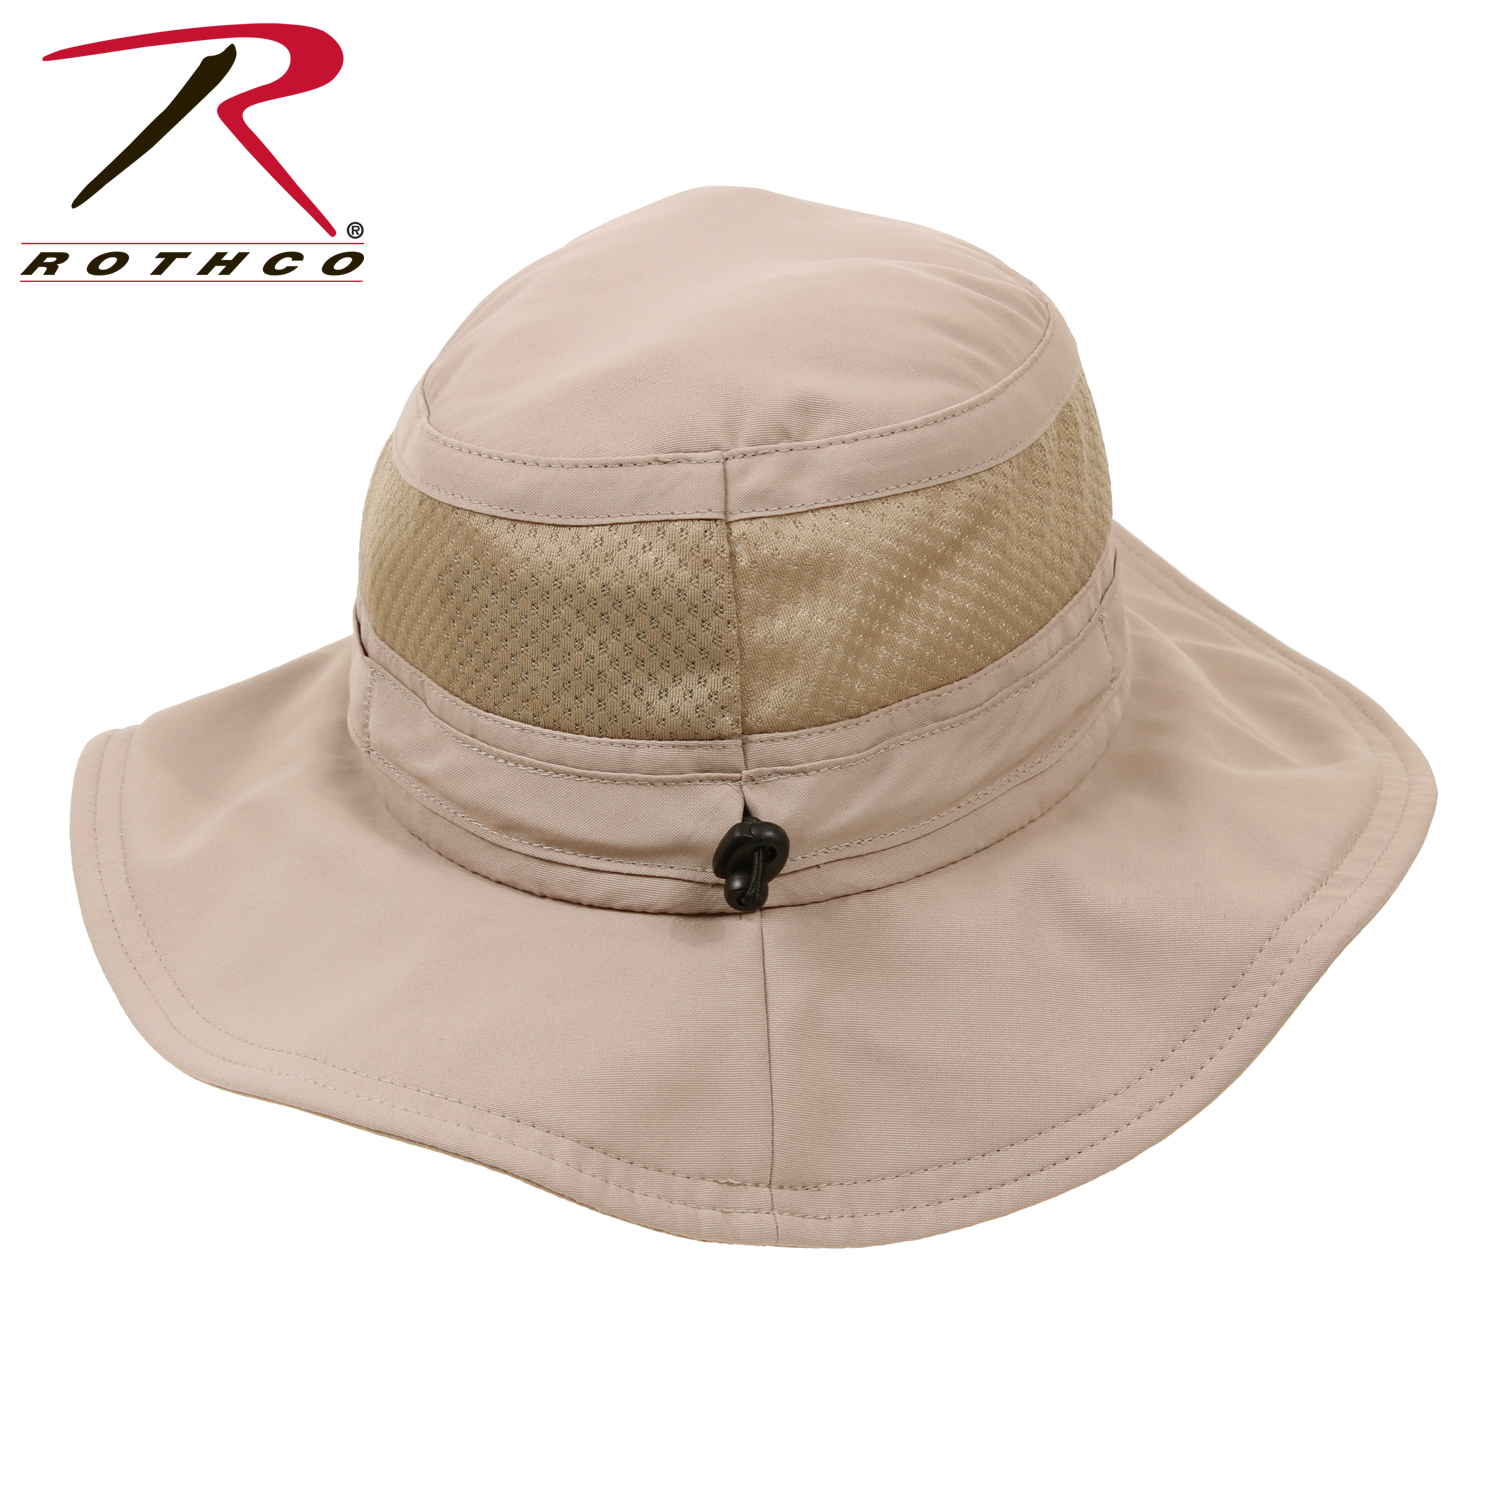 4a3aa82ab33 Rothco Lightweight Adjustable Mesh Boonie Hat